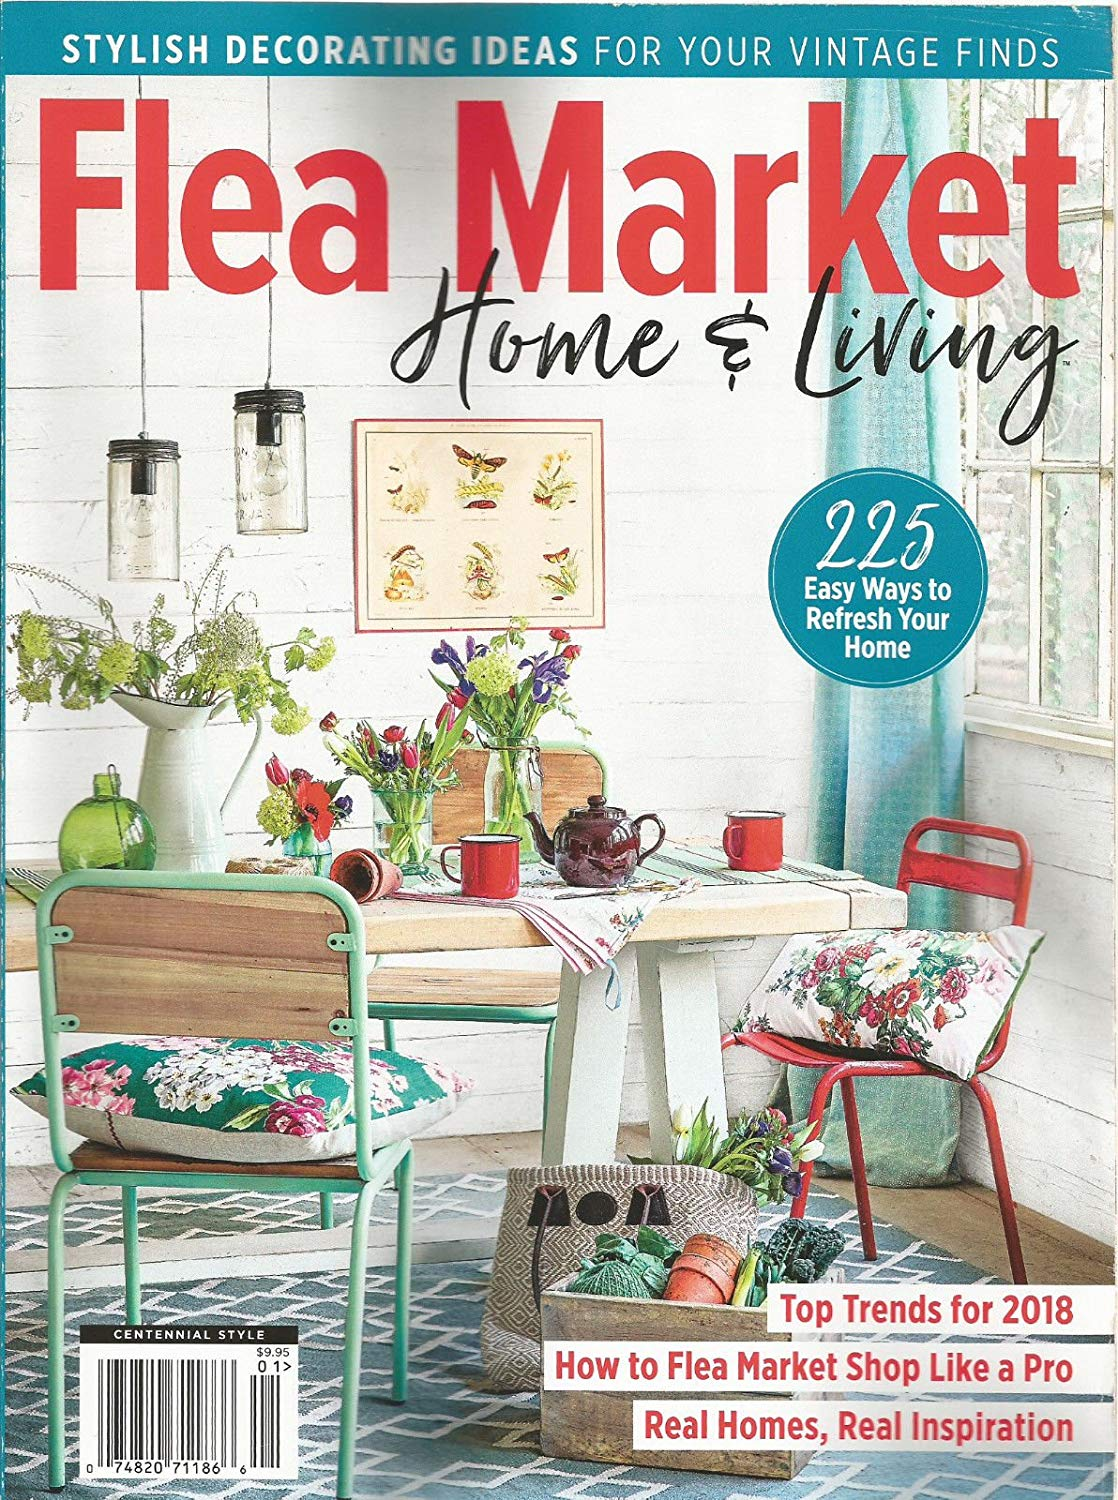 flea market home and living cover